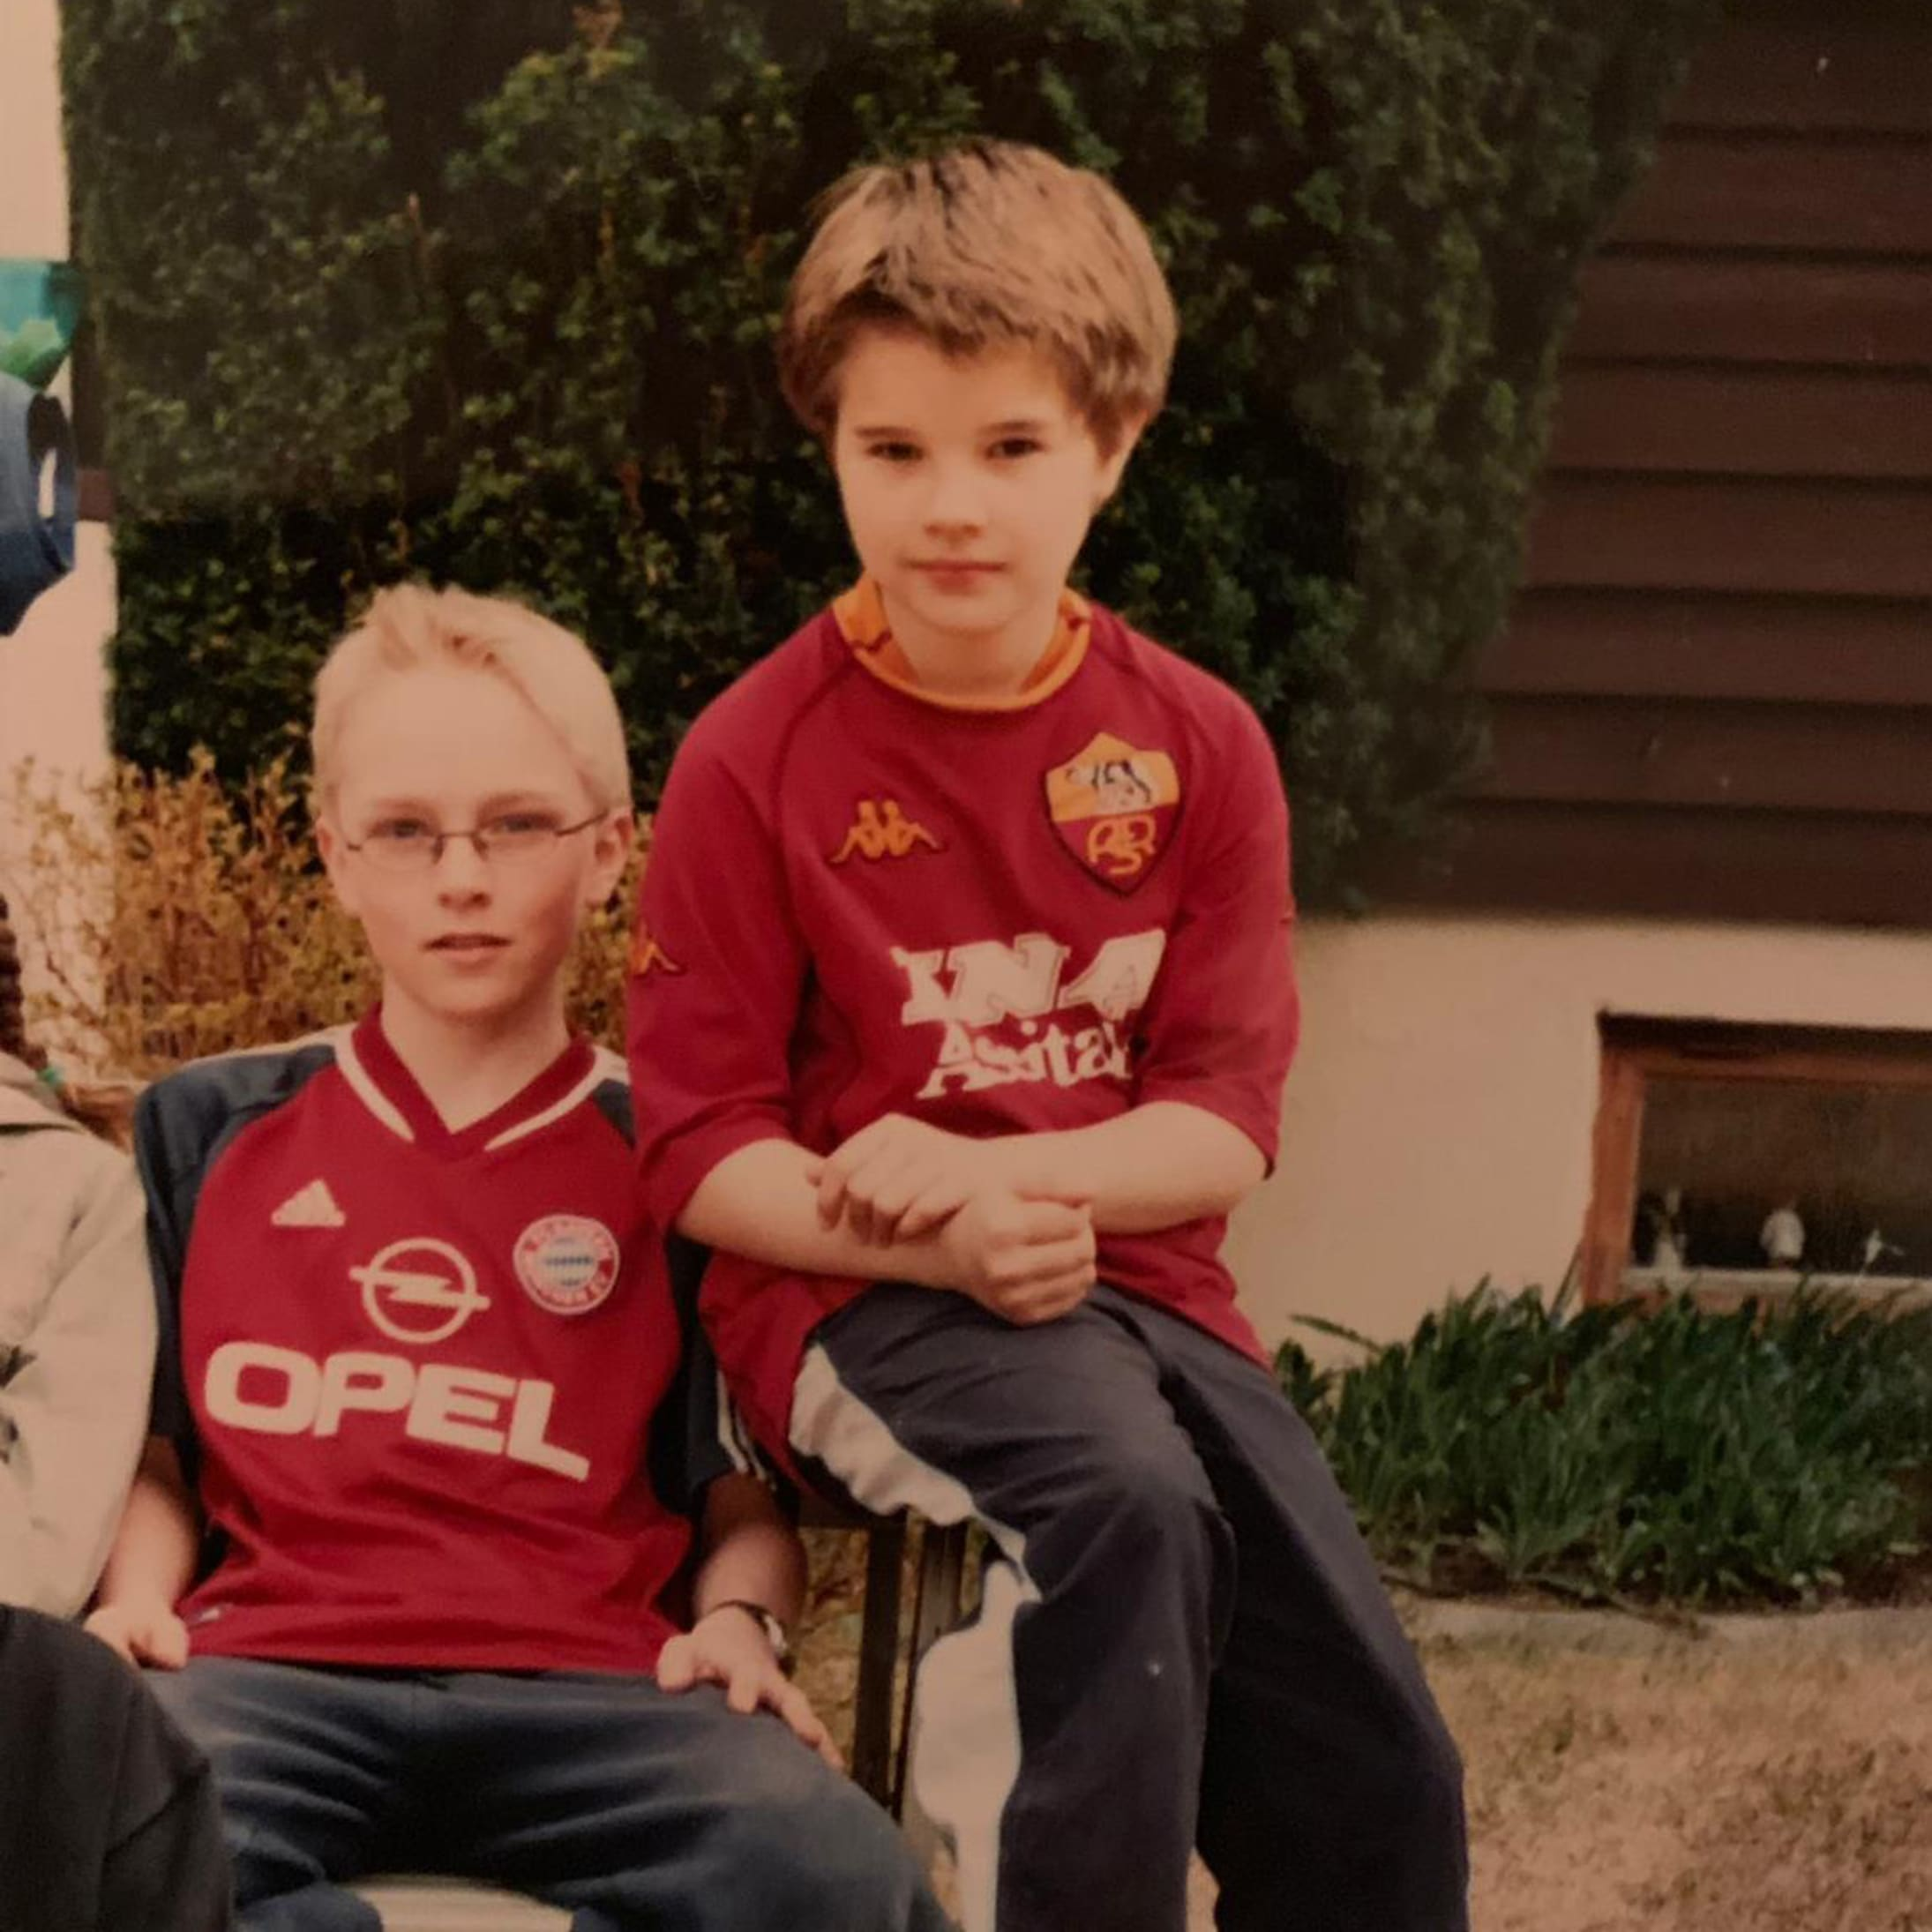 Hegerberg: I've loved Roma since I was a kid